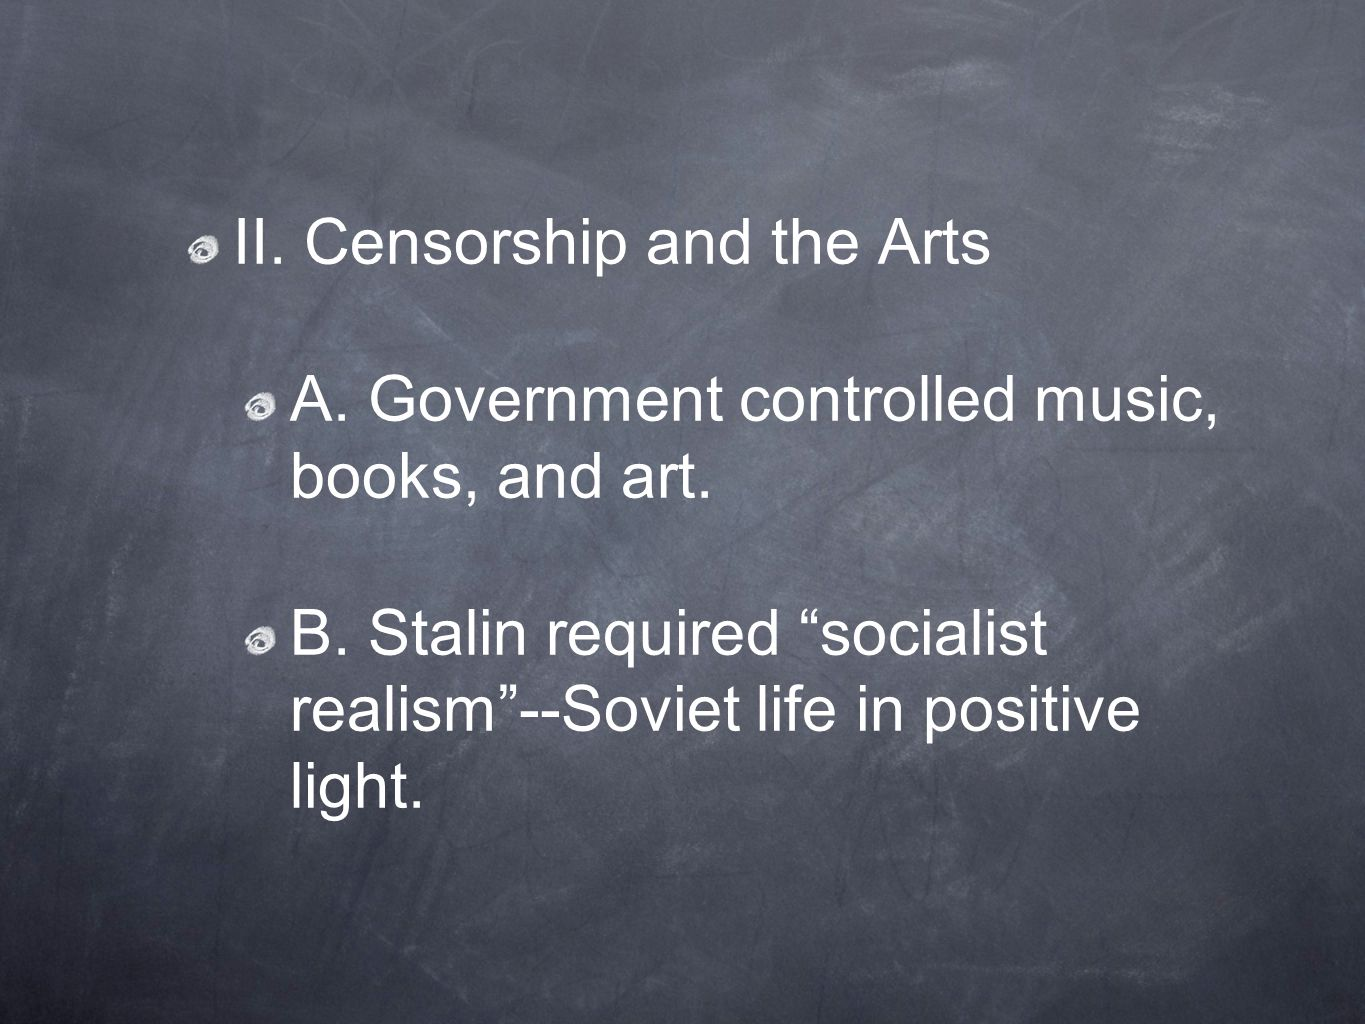 II. Censorship and the Arts A. Government controlled music, books, and art.